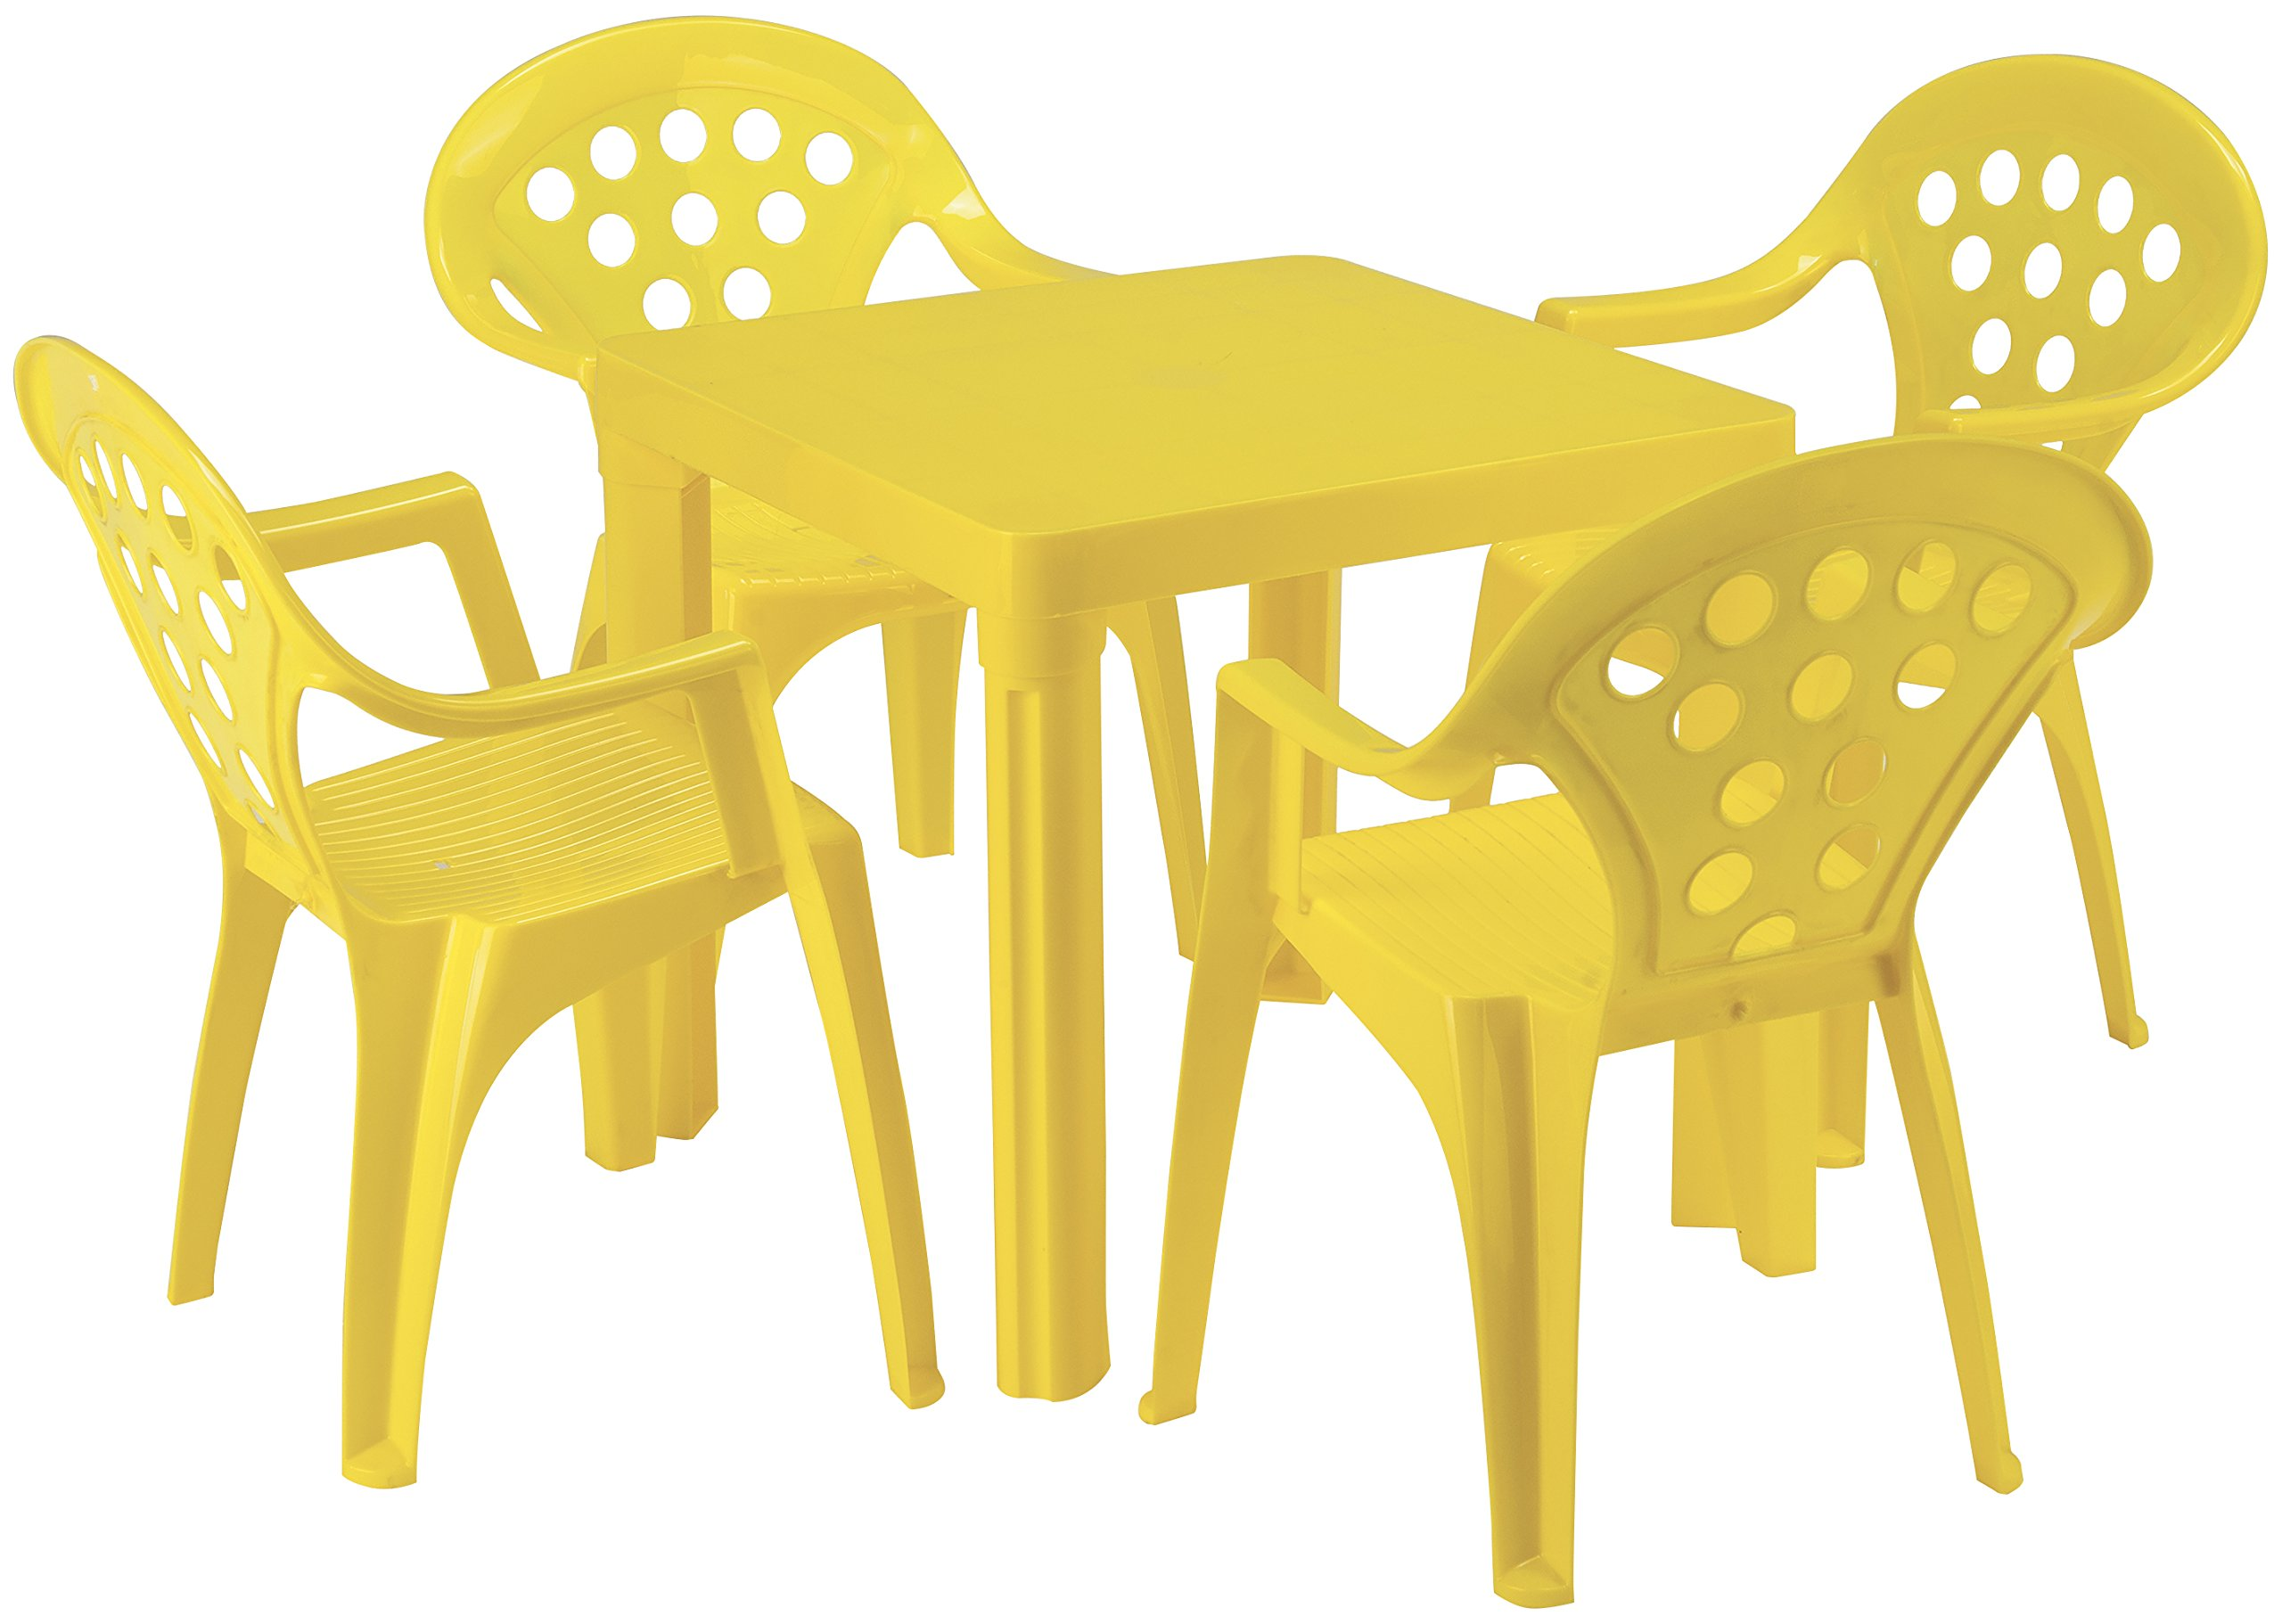 Baby Lulu Grand Soleil Children's Outdoor and Indoor Table and Chair Set - 4 Chairs - Made in Italy to European Standards with PolyPure - (Yellow)